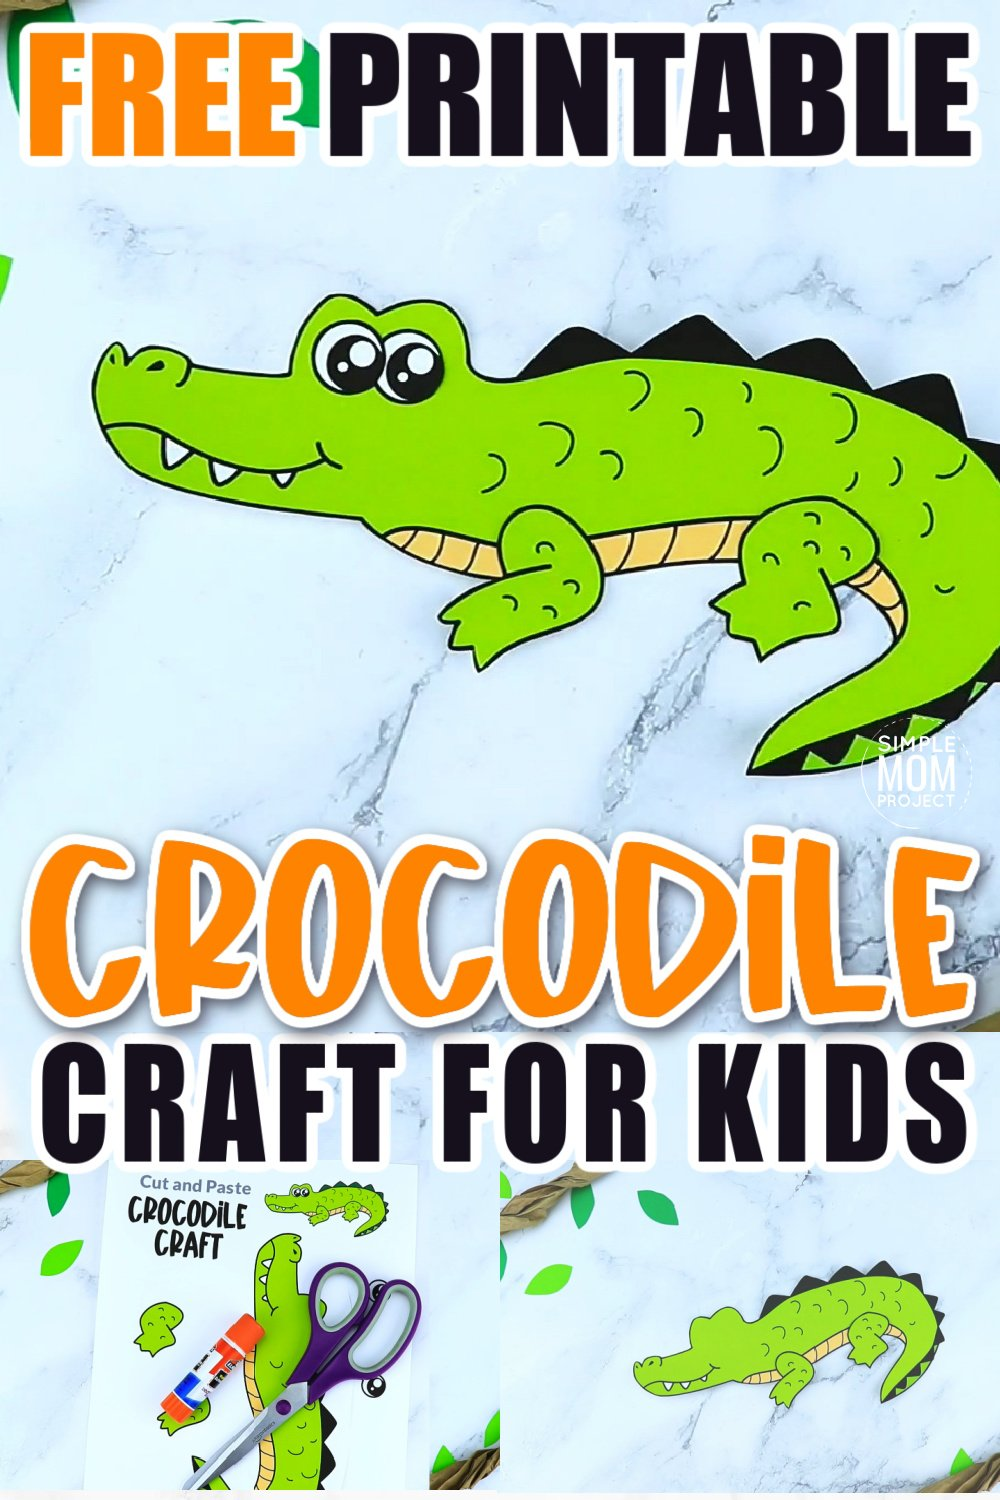 Are your kids into easy peasy crocodile crafts? Then they will absolutely love this printable cut out crocodile template! With the step by step tutorial, you can glue this crocodile craft together in no time. Kids of all ages will love making him! Click and download the free printable crocodile template now!